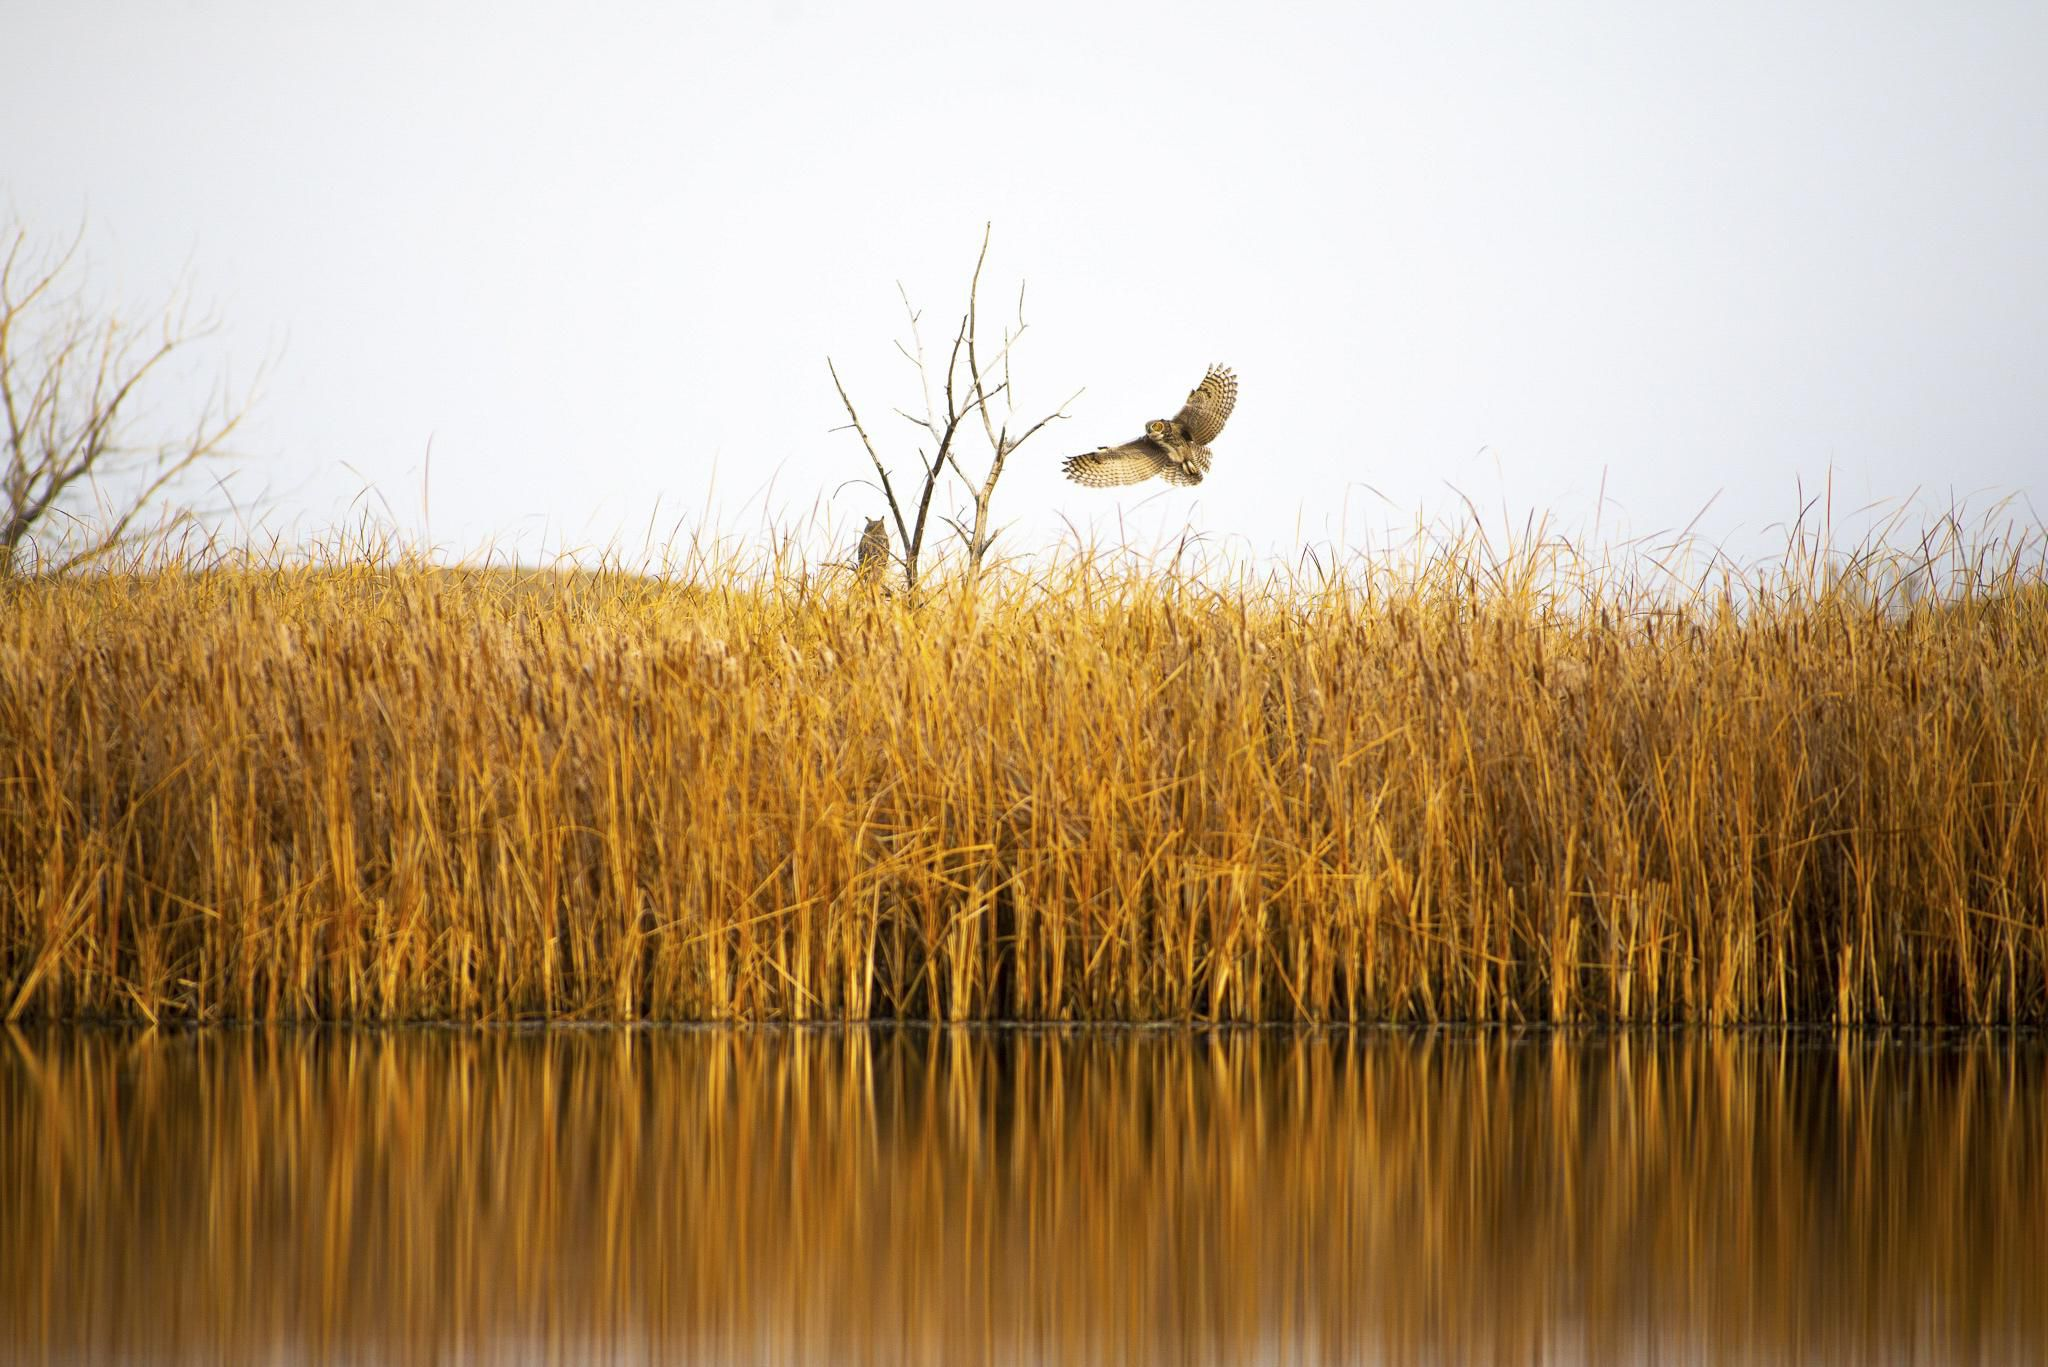 A great horned owl is flying above tall marsh grasses.